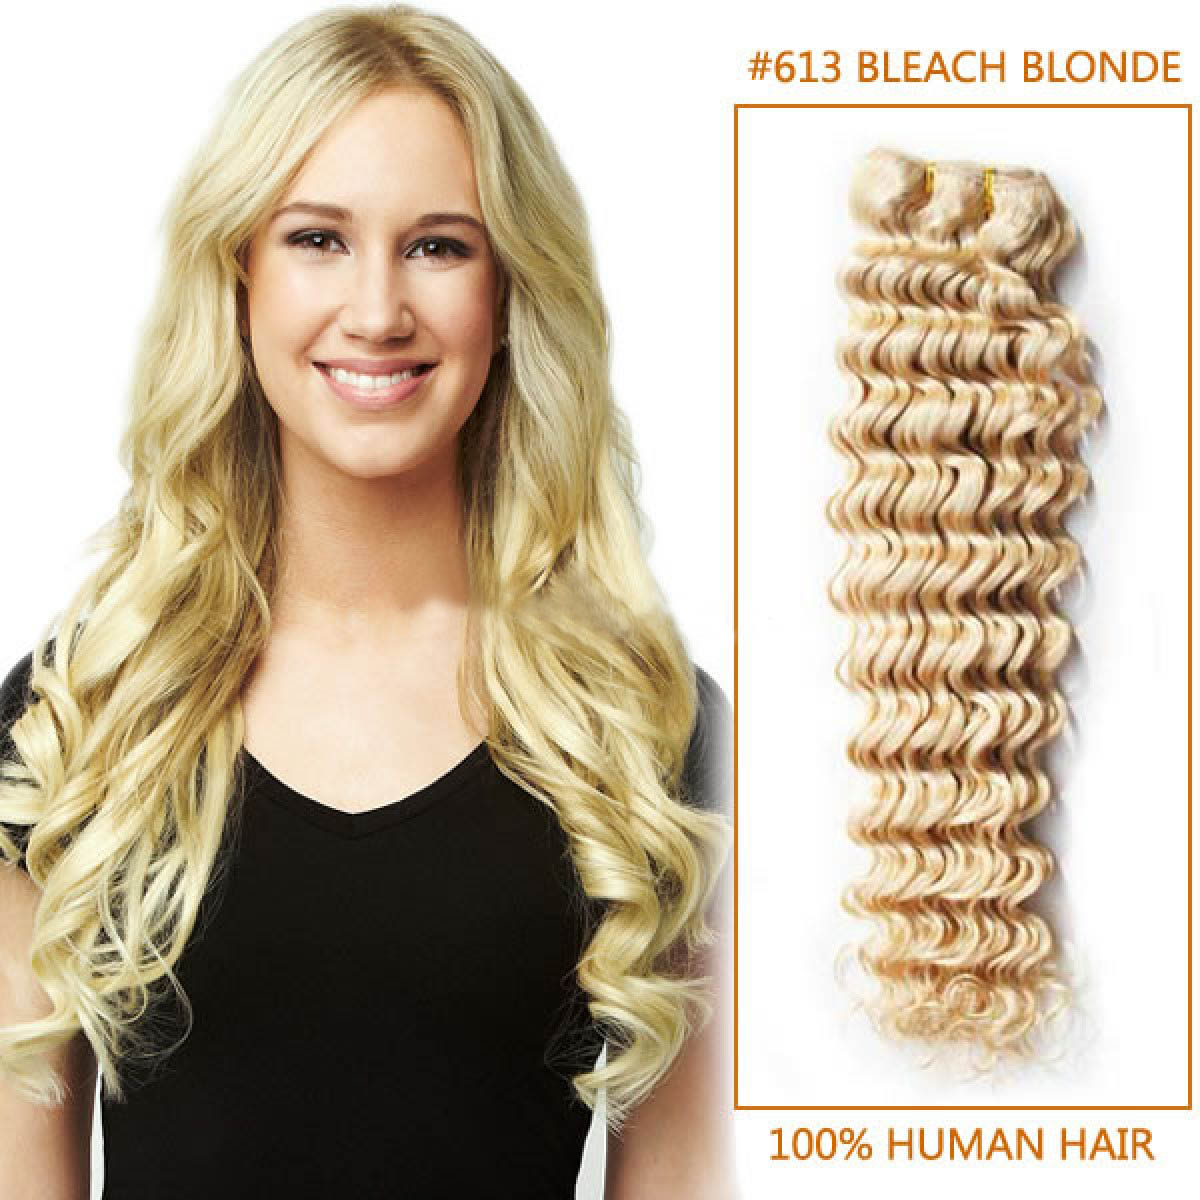 18 Inch 613 Bleach Blonde Deep Wave Indian Remy Hair Wefts